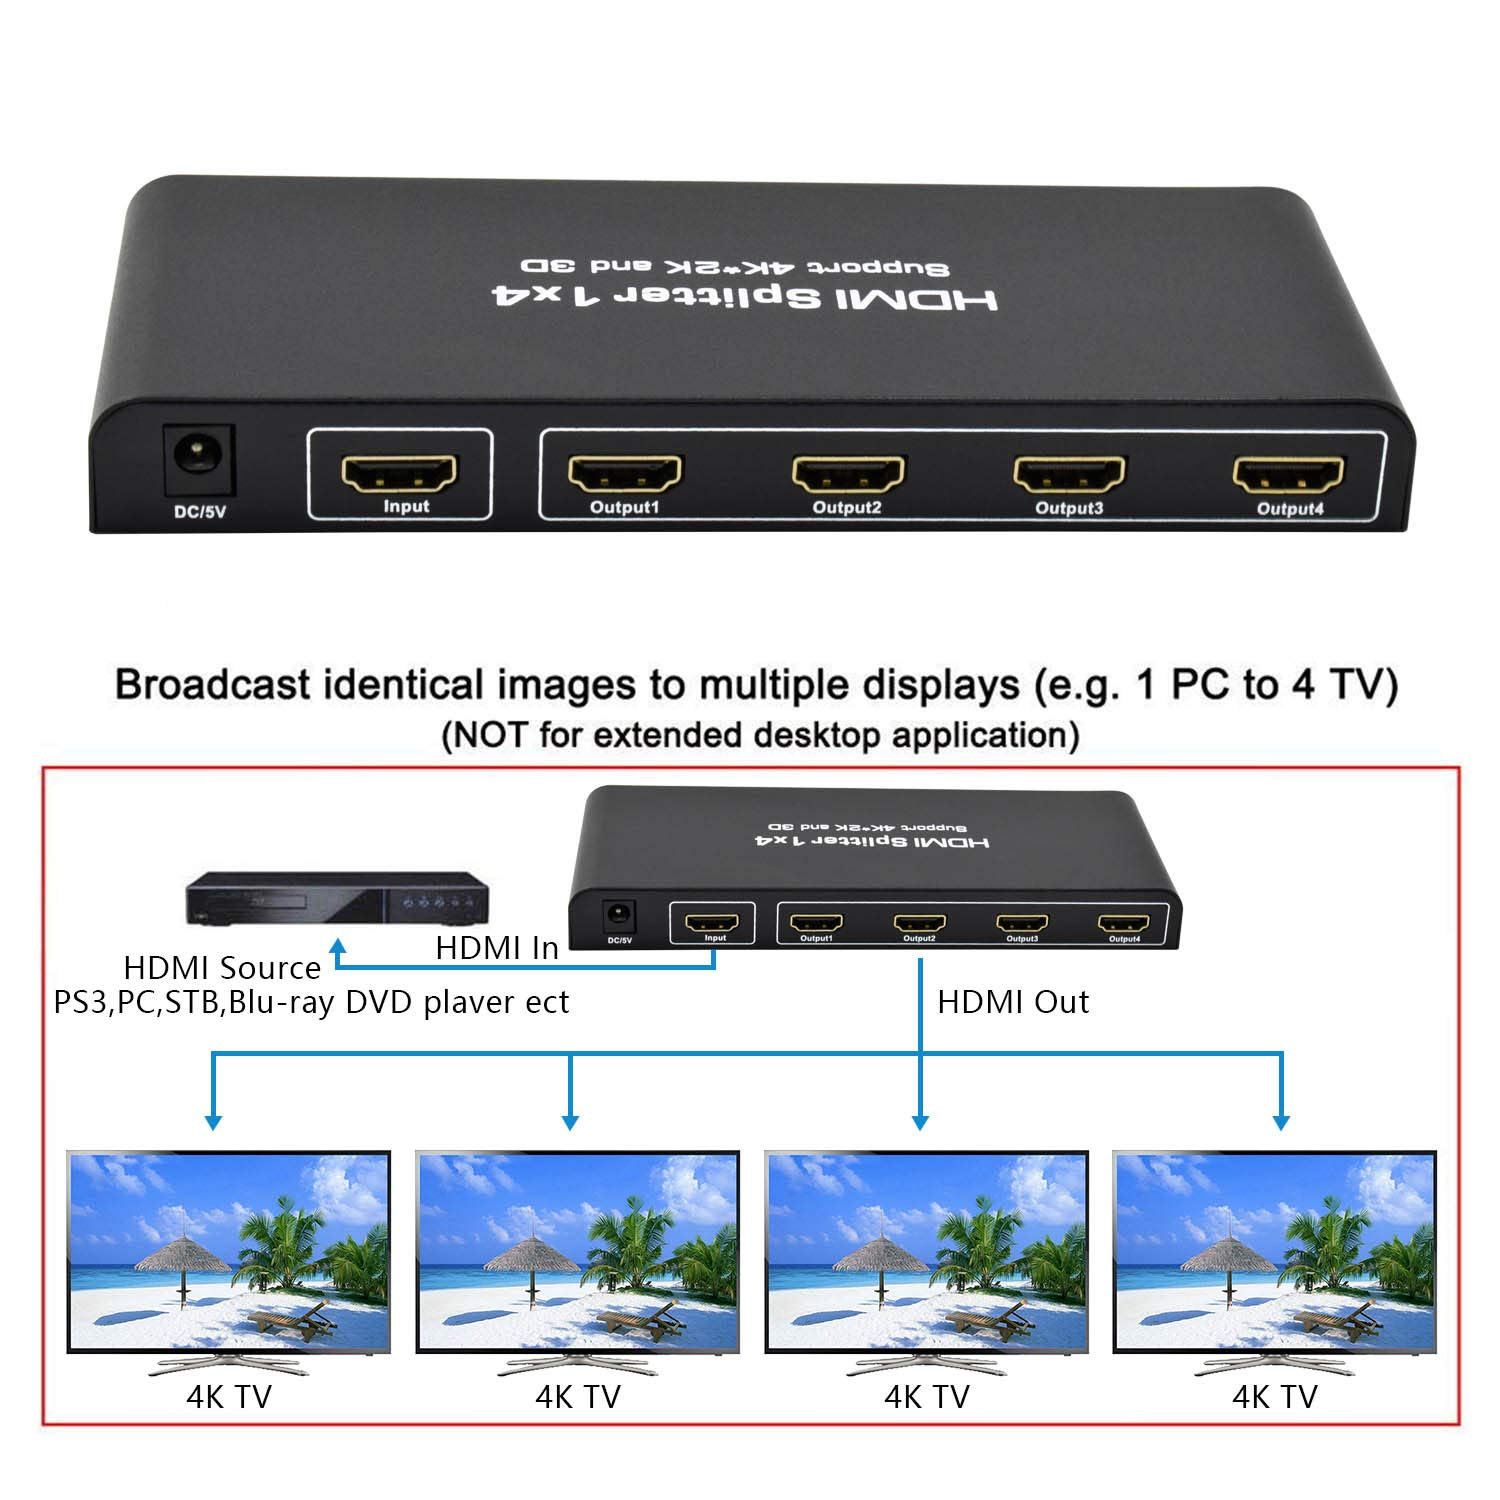 Neoteck HDMI Splitter 1 auf 4 1080P 1x4 HDMI Verteiler 1 IN 4 OUT HD Hub Smart Splitter 3D Aktiver Switcher f/ür HDTV PC Projector Sky Box PS3 PS4 Xbox STB